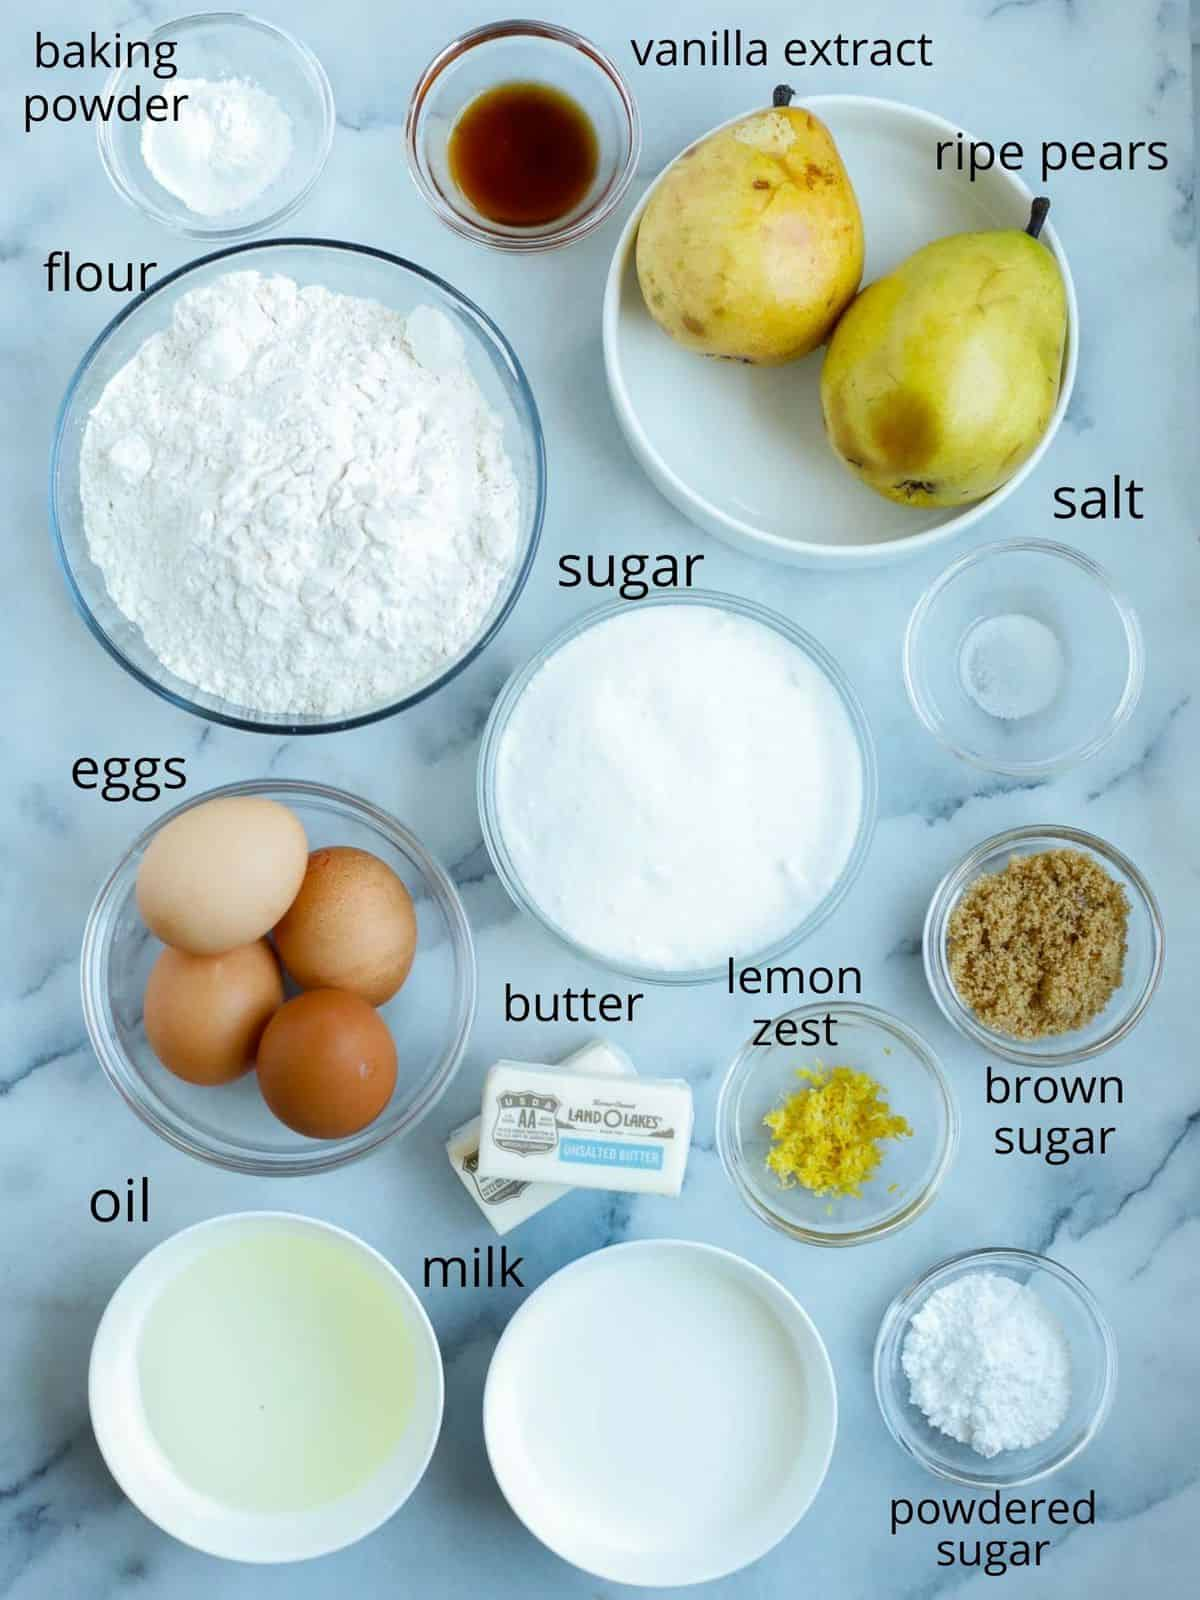 ingredients of the pear cakes in ramekins laid out on a marble slab.